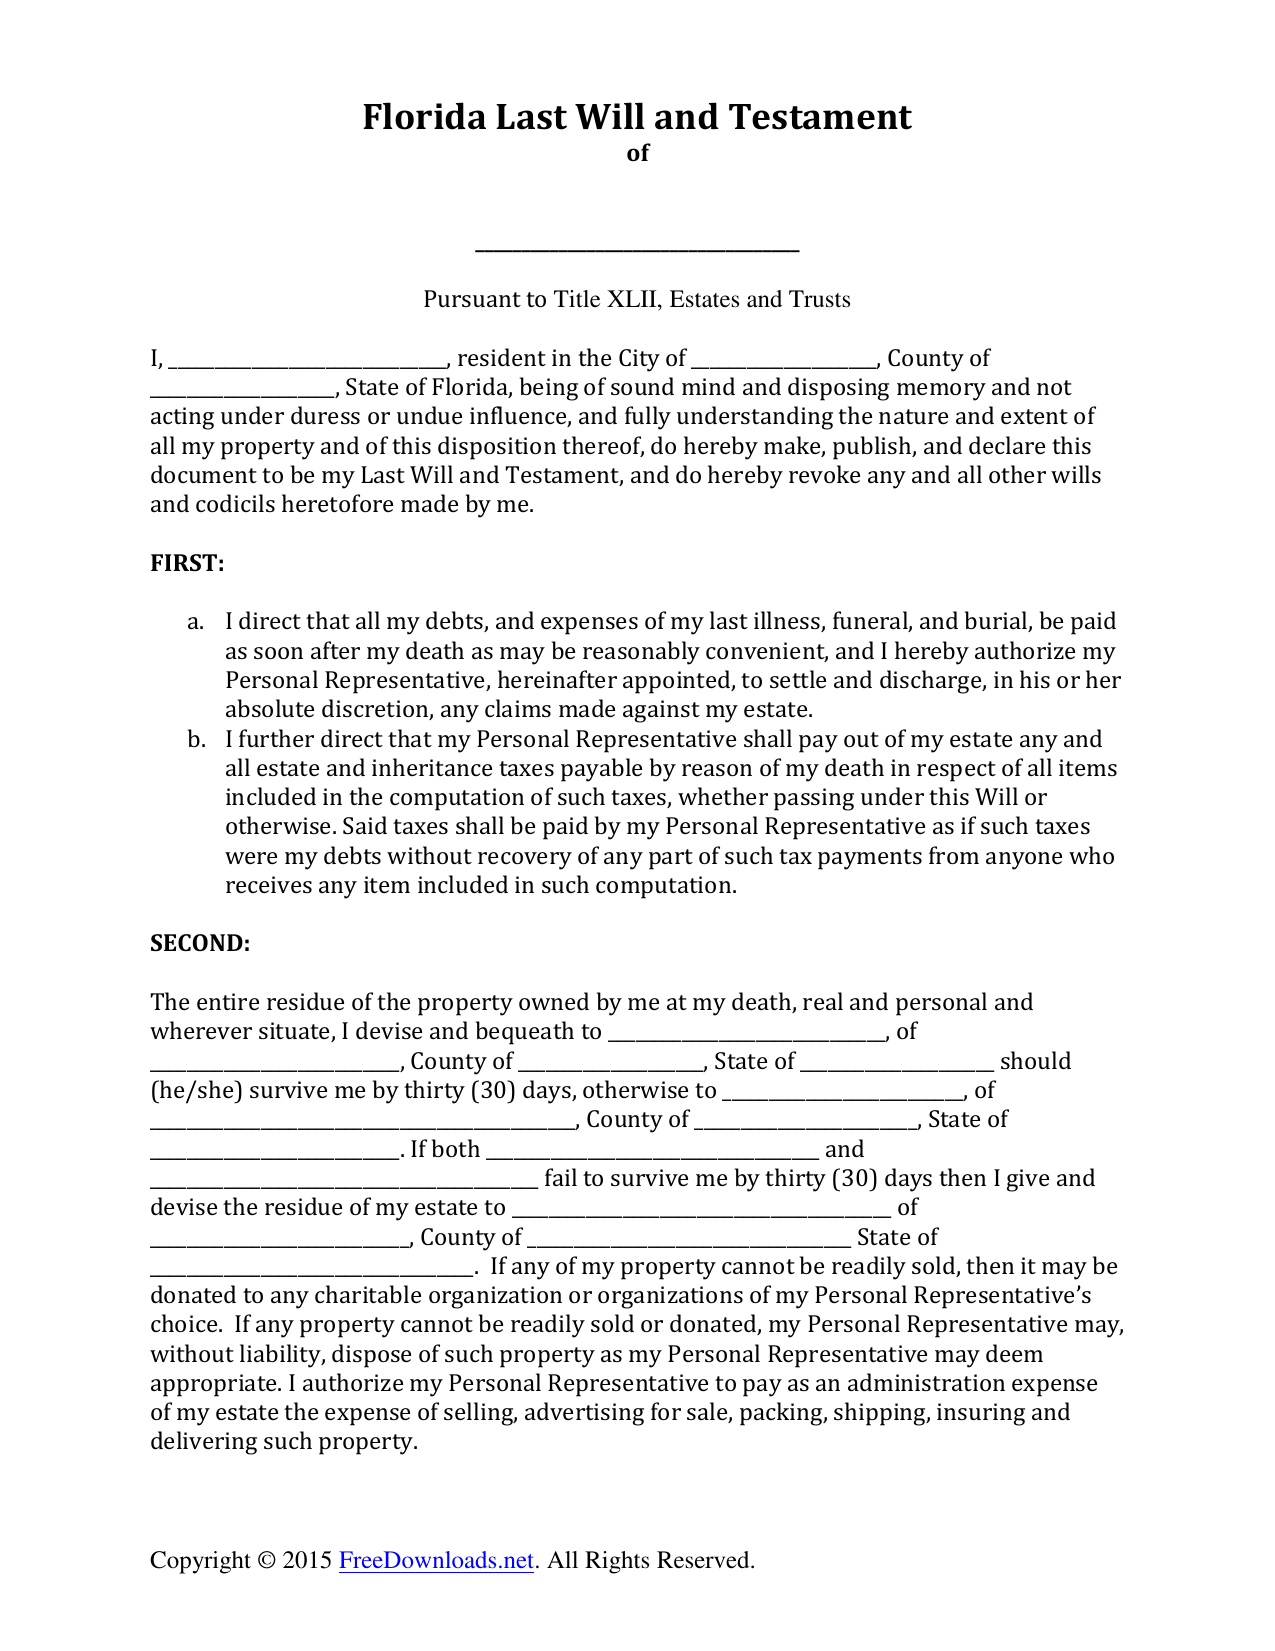 photo about Free Printable Last Will and Testament Blank Forms Florida named Obtain Florida Very last Will and Testomony Sort PDF RTF